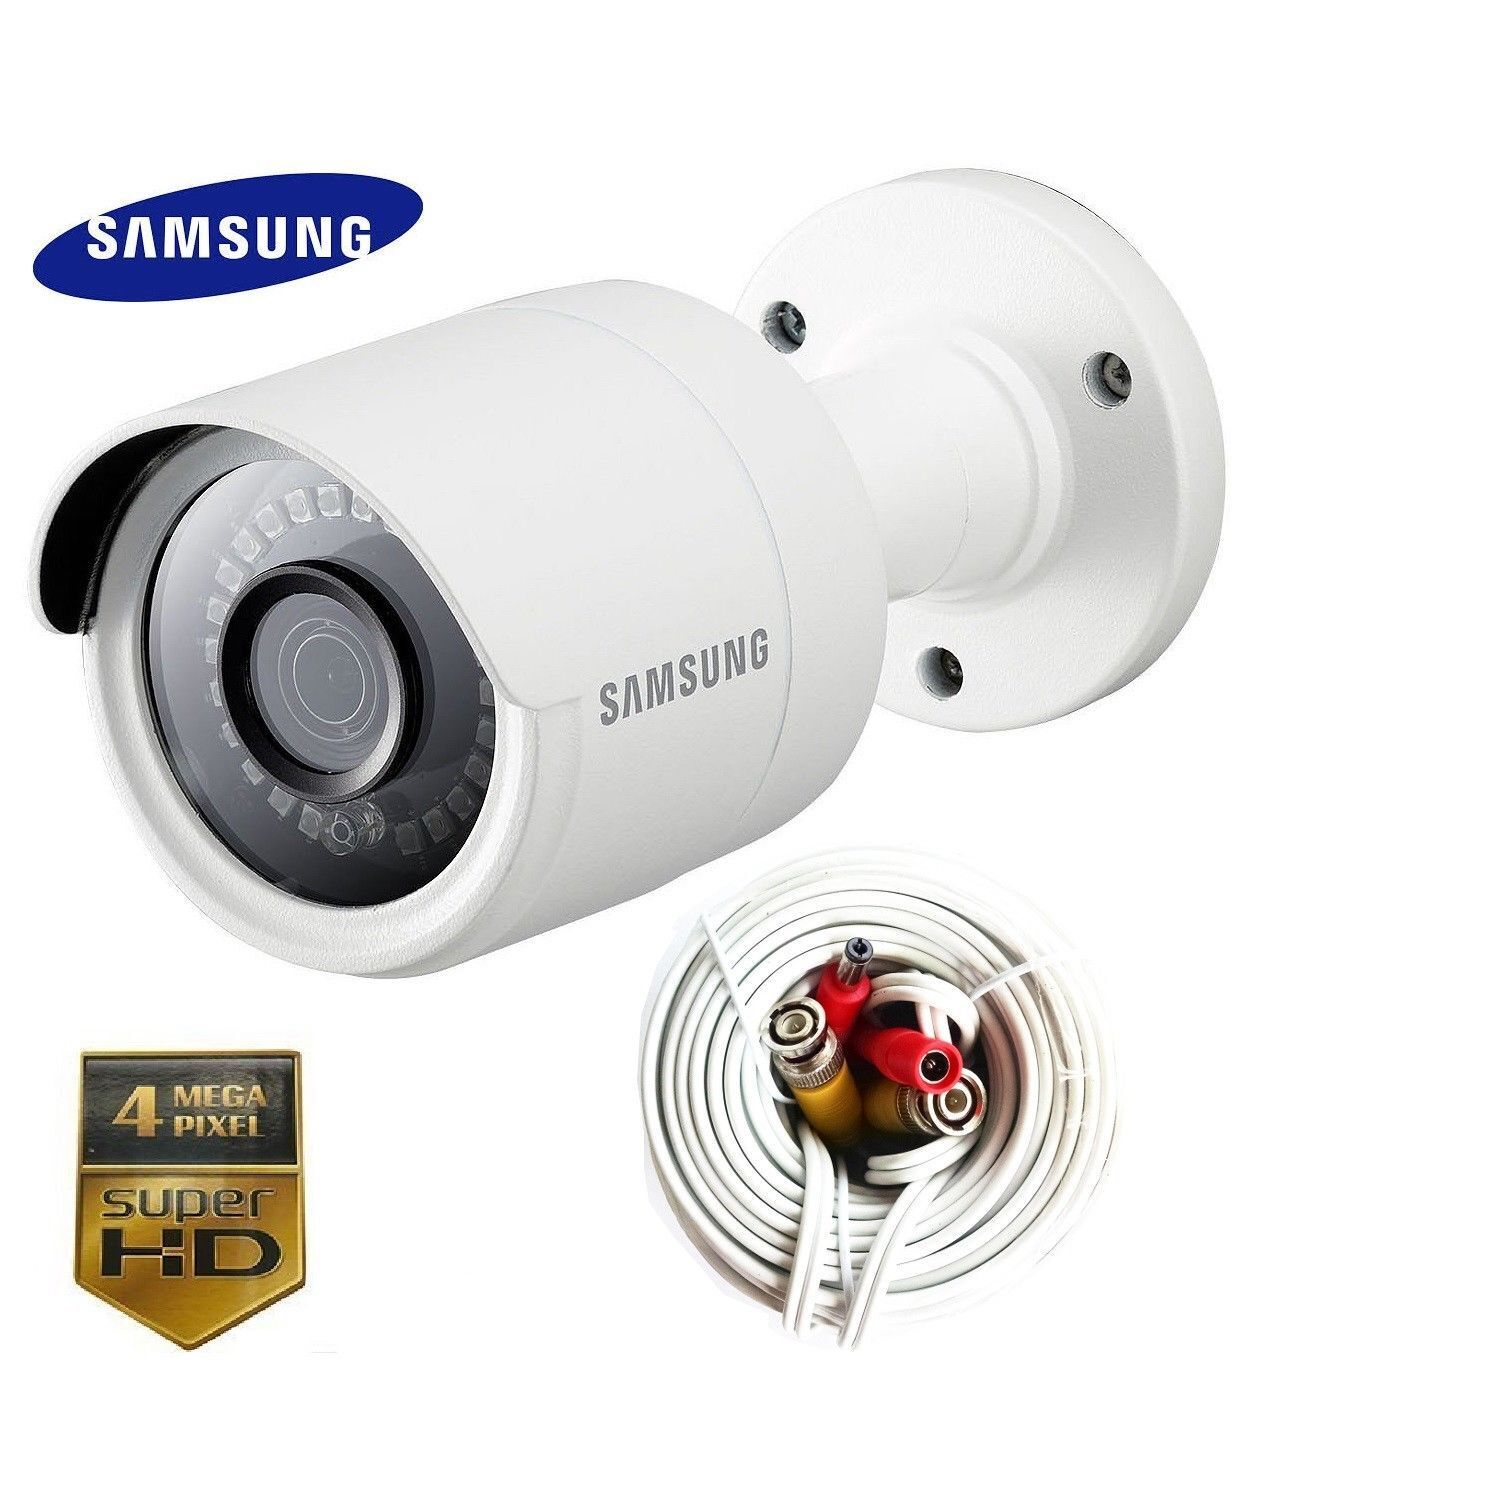 Samsung Sdc89440bf Security Camera Ebay Q See Wiring Diagram For Stock Photo